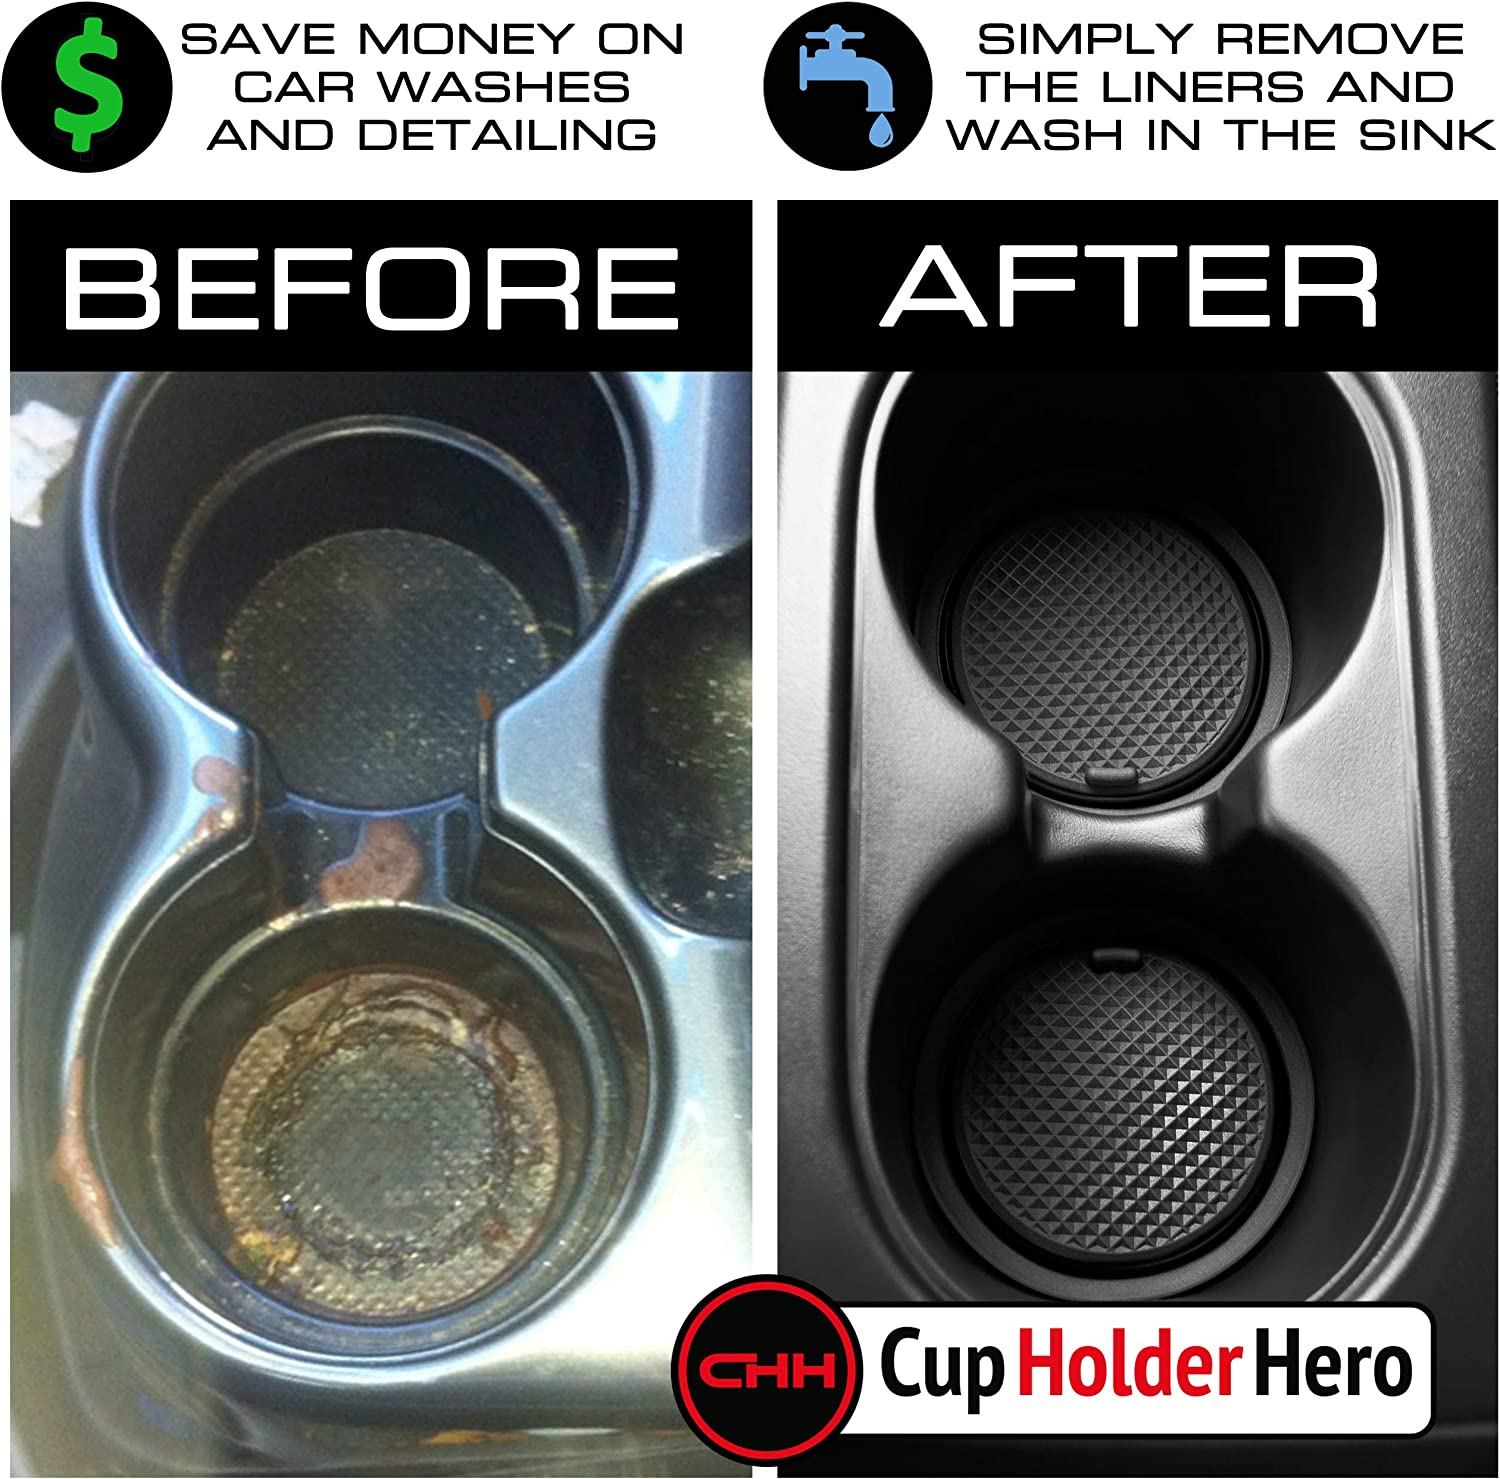 Center Console Liner Mats Solid Black Door Pocket Liners 14-pc Set CupHolderHero for Chevy Equinox Accessories 2018-2021 Premium Custom Interior Non-Slip Anti Dust Cup Holder Inserts